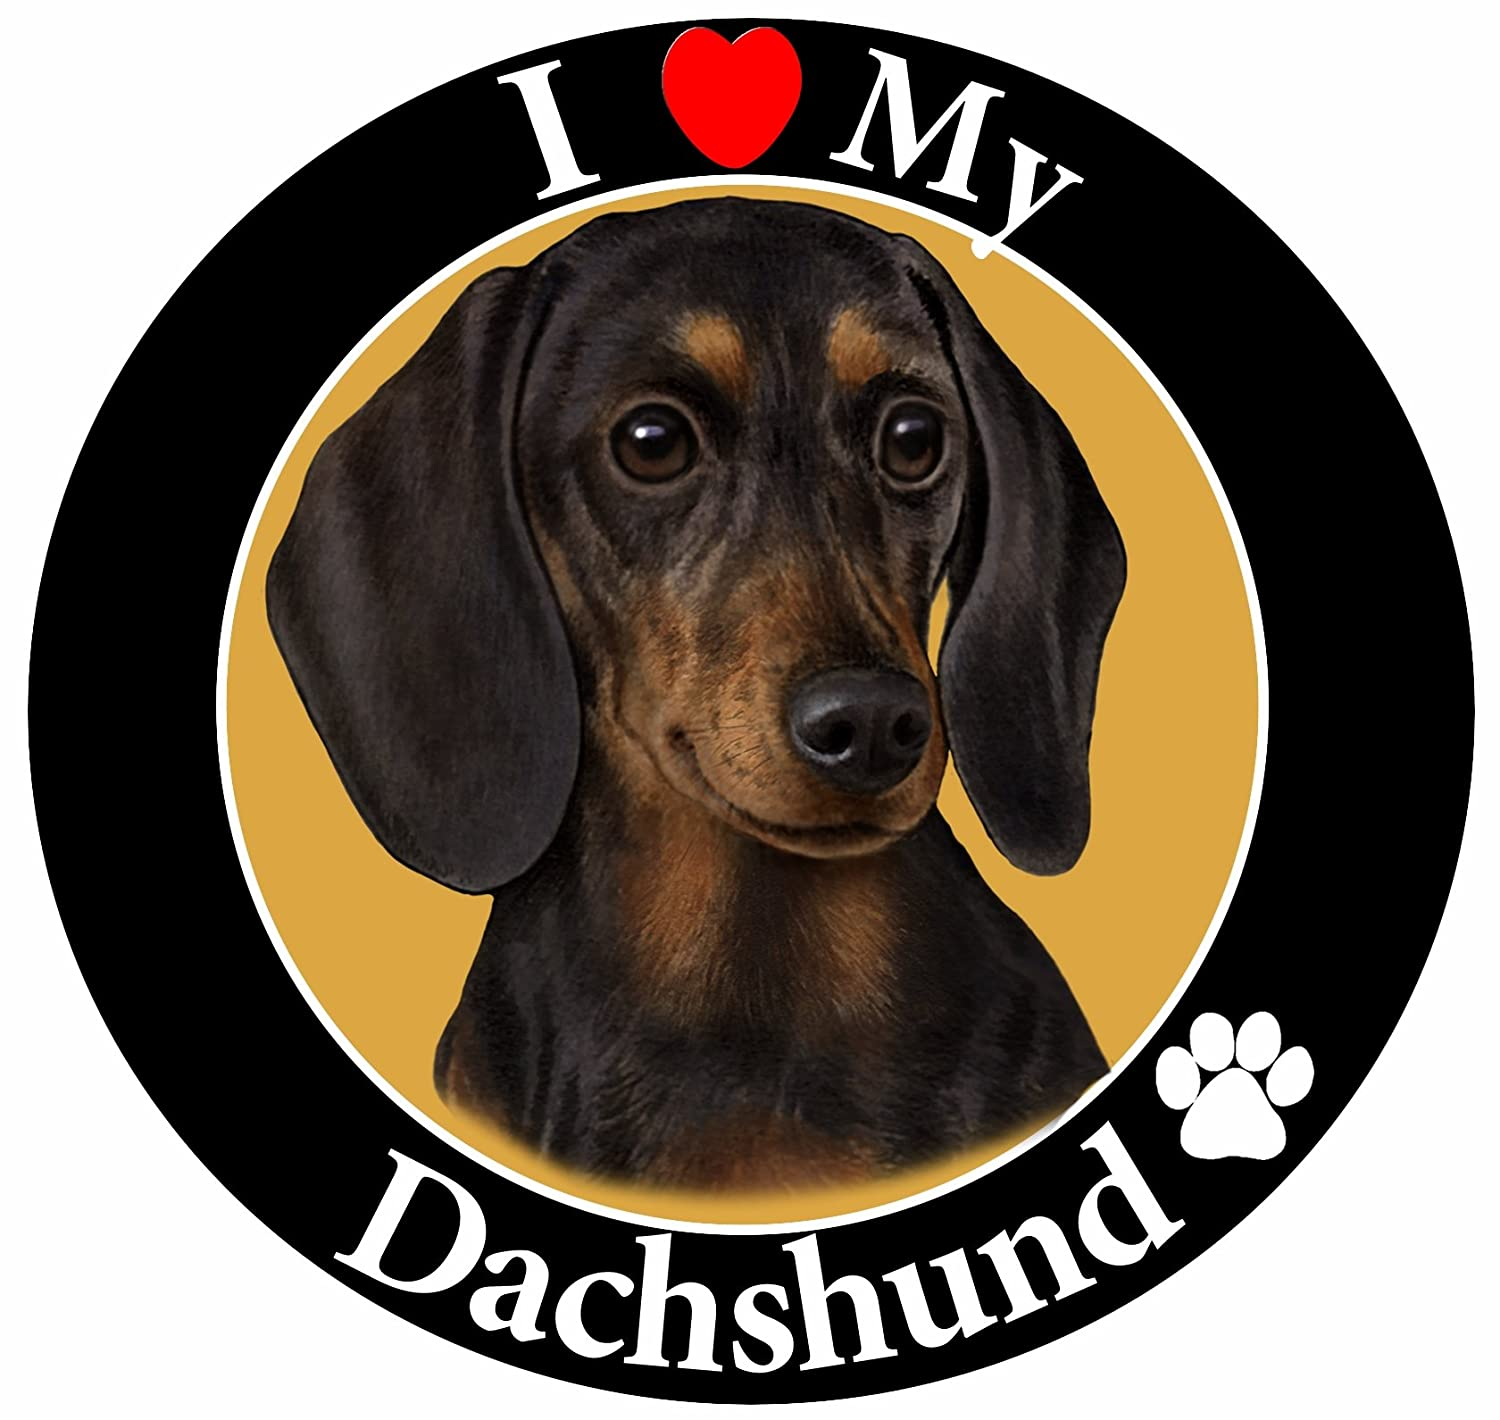 """I Love My Dachshund"" Black Car Magnet With Realistic Looking Dachshund Photograph In The Center Covered In UV Gloss For Weather and Fading Protection Circle Shaped Magnet Measures 5.25 Inches Diameter E&S Imports CM-14 Dachshund car magnet car magnets"